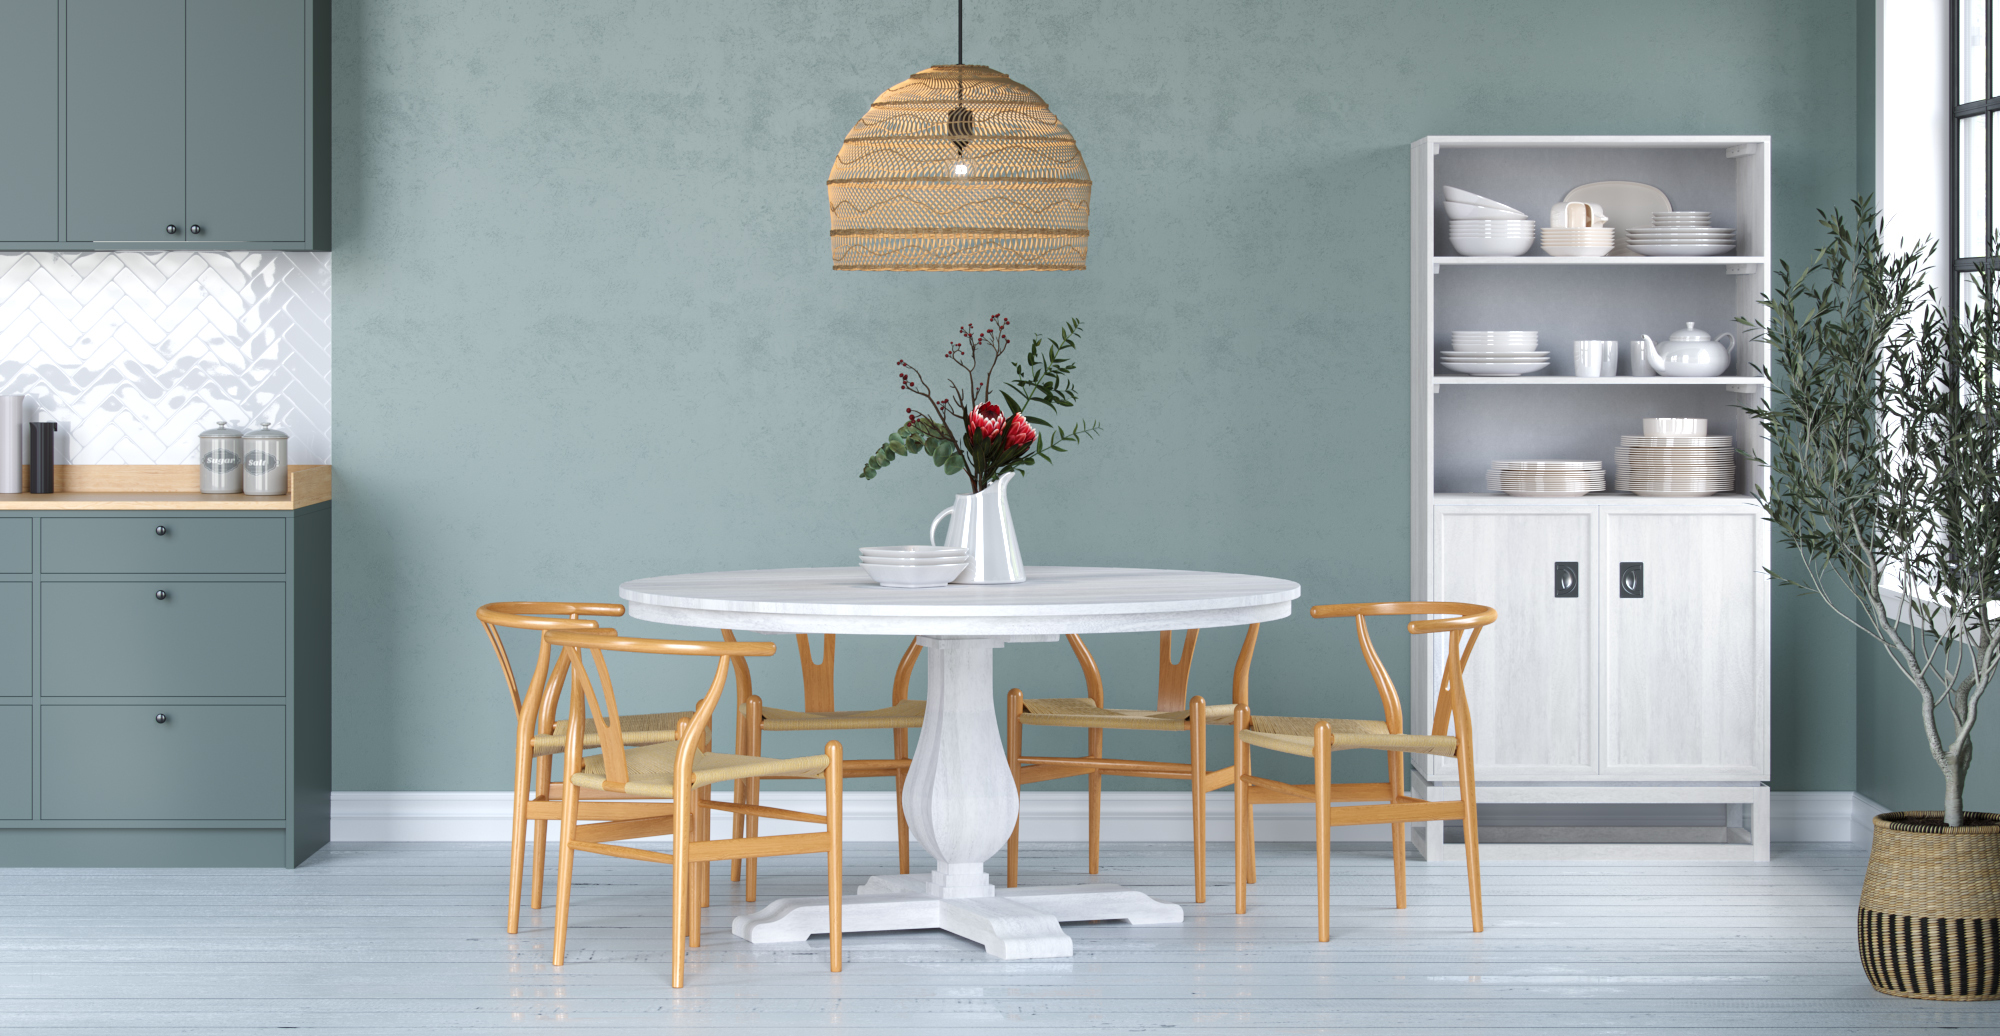 Brosa Darby Round Dining Table 150cm styled in coastal dining room